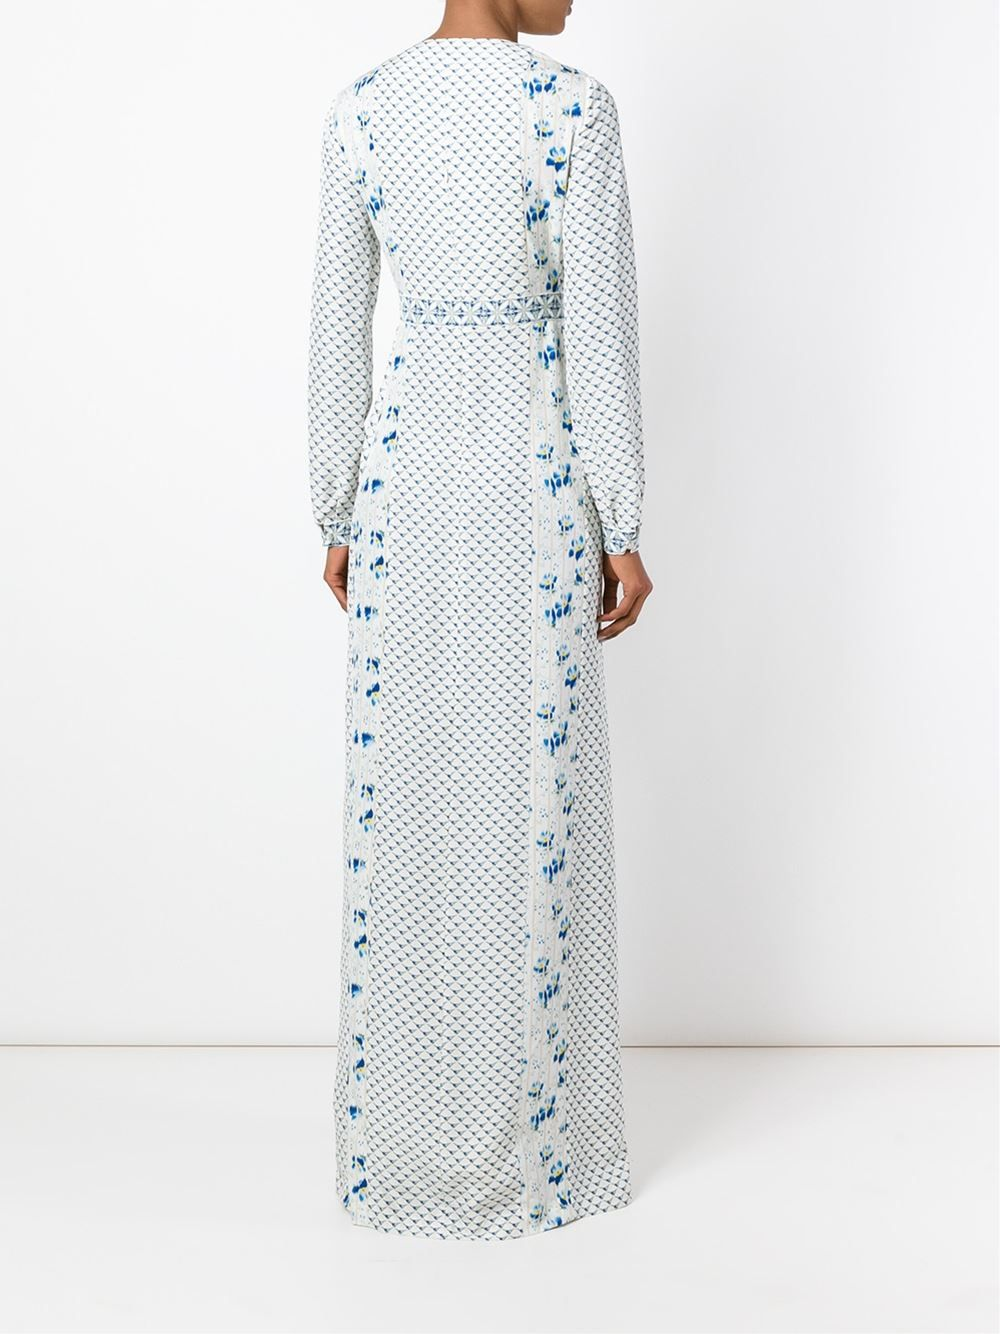 Vilshenko Mixed Print Pleated Dress - Excelsior Milano - Farfetch.com